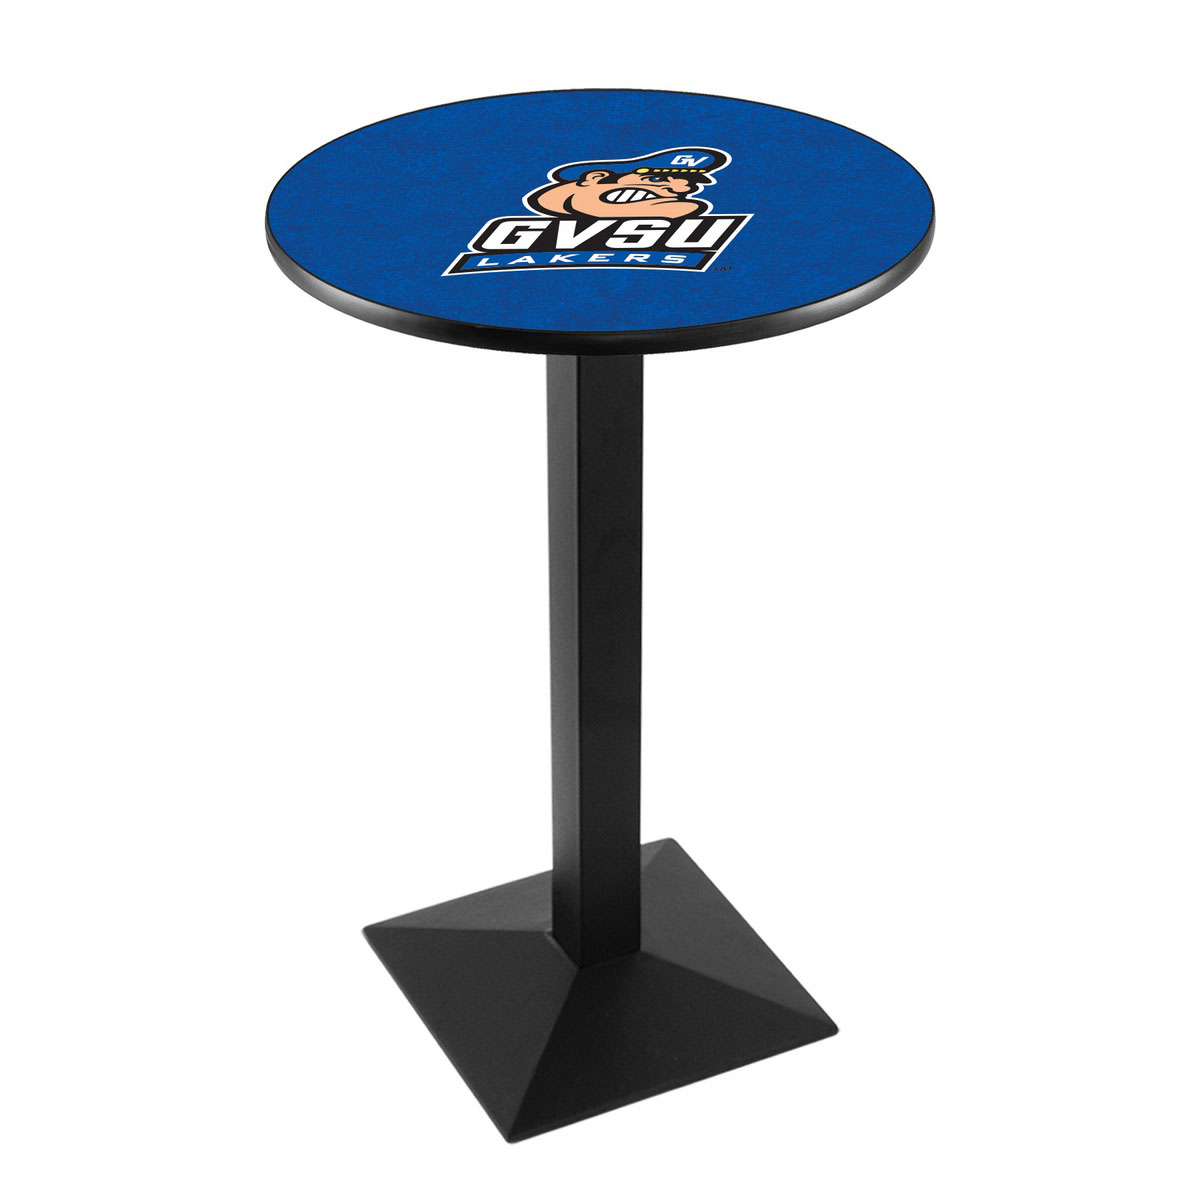 Outstanding Grand Valley State University Logo Pub Bar Table Square Stand Product Photo